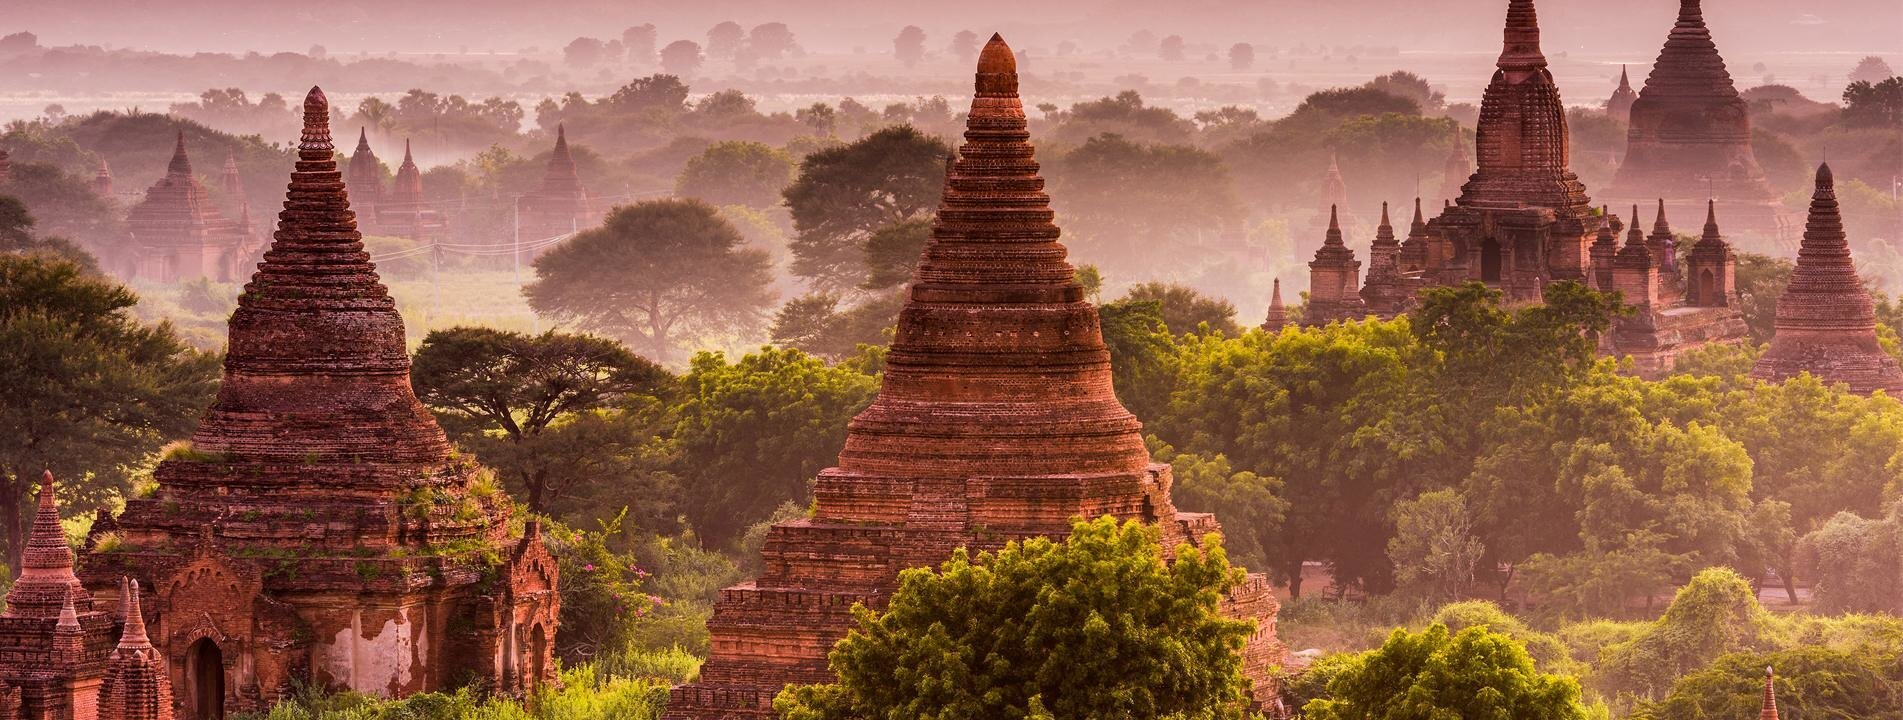 Bagan temples in the morning